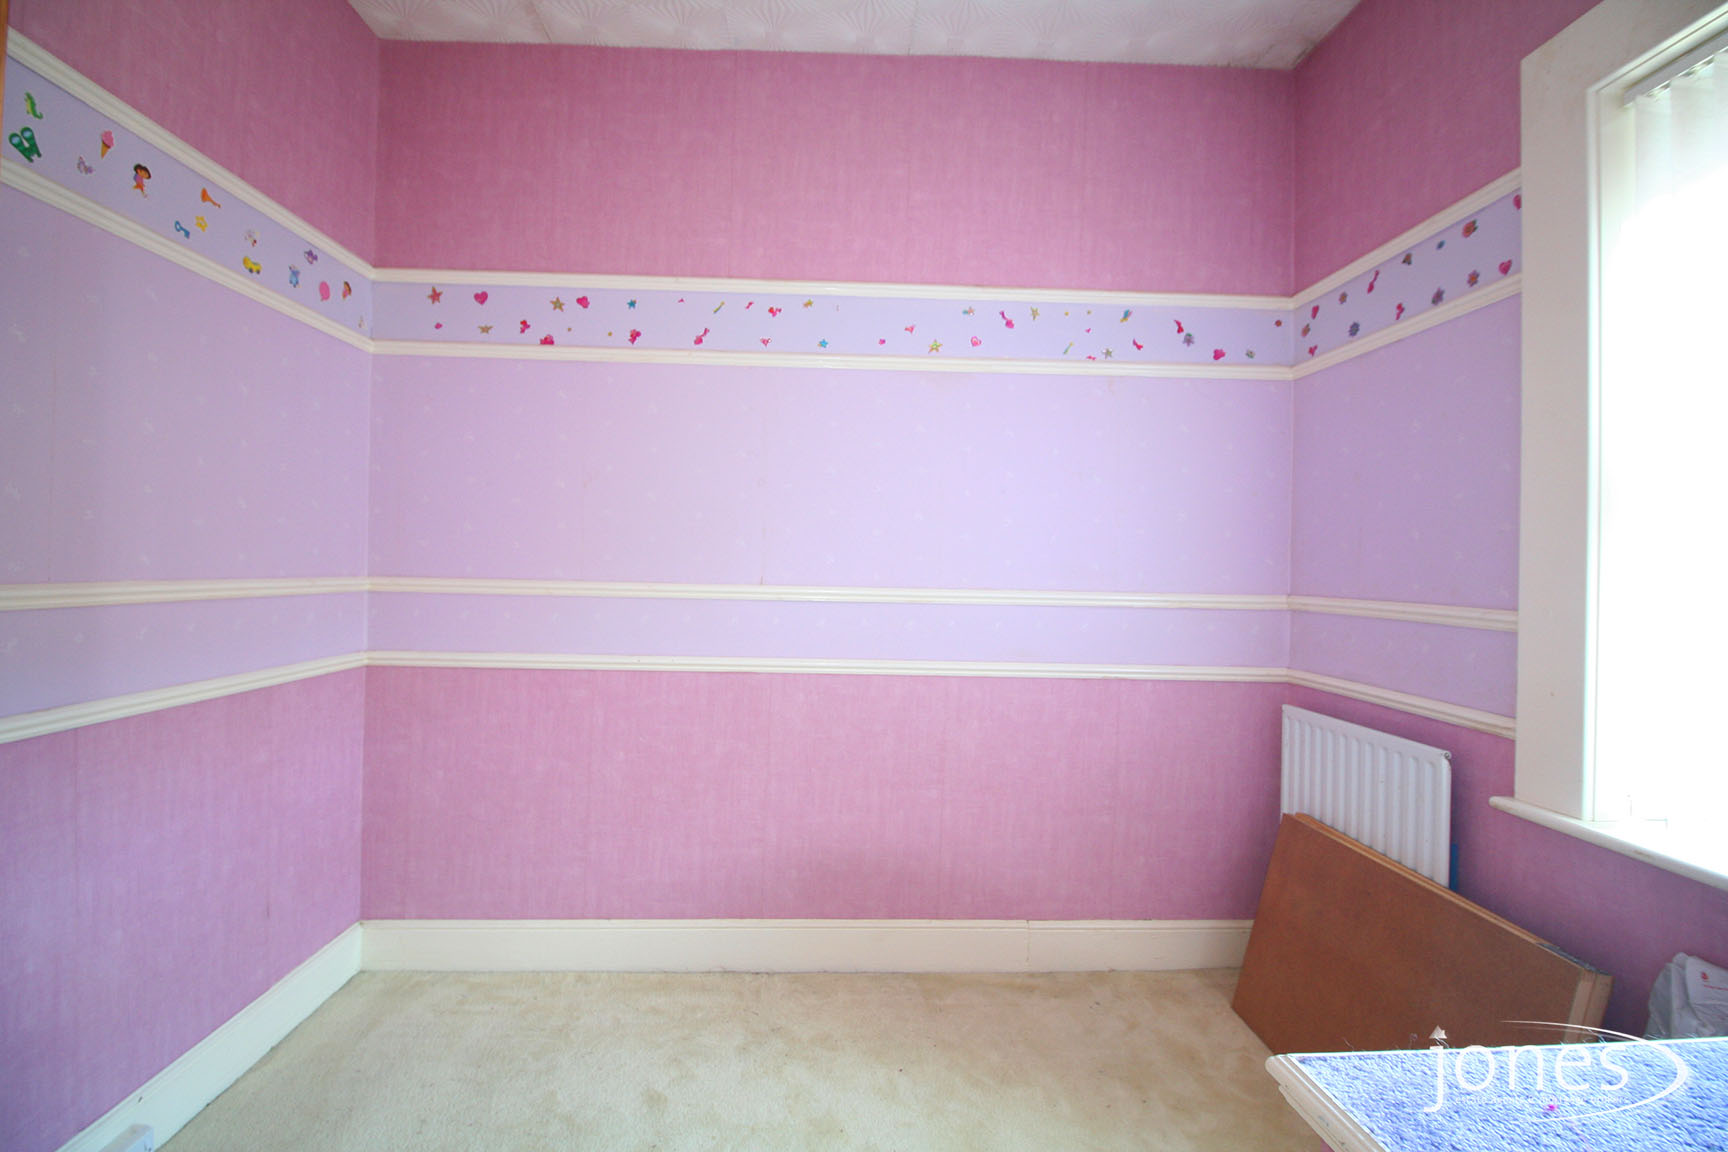 Home for Sale Let - Photo 05 Dent Street, Hartlepool, TS26 8AY